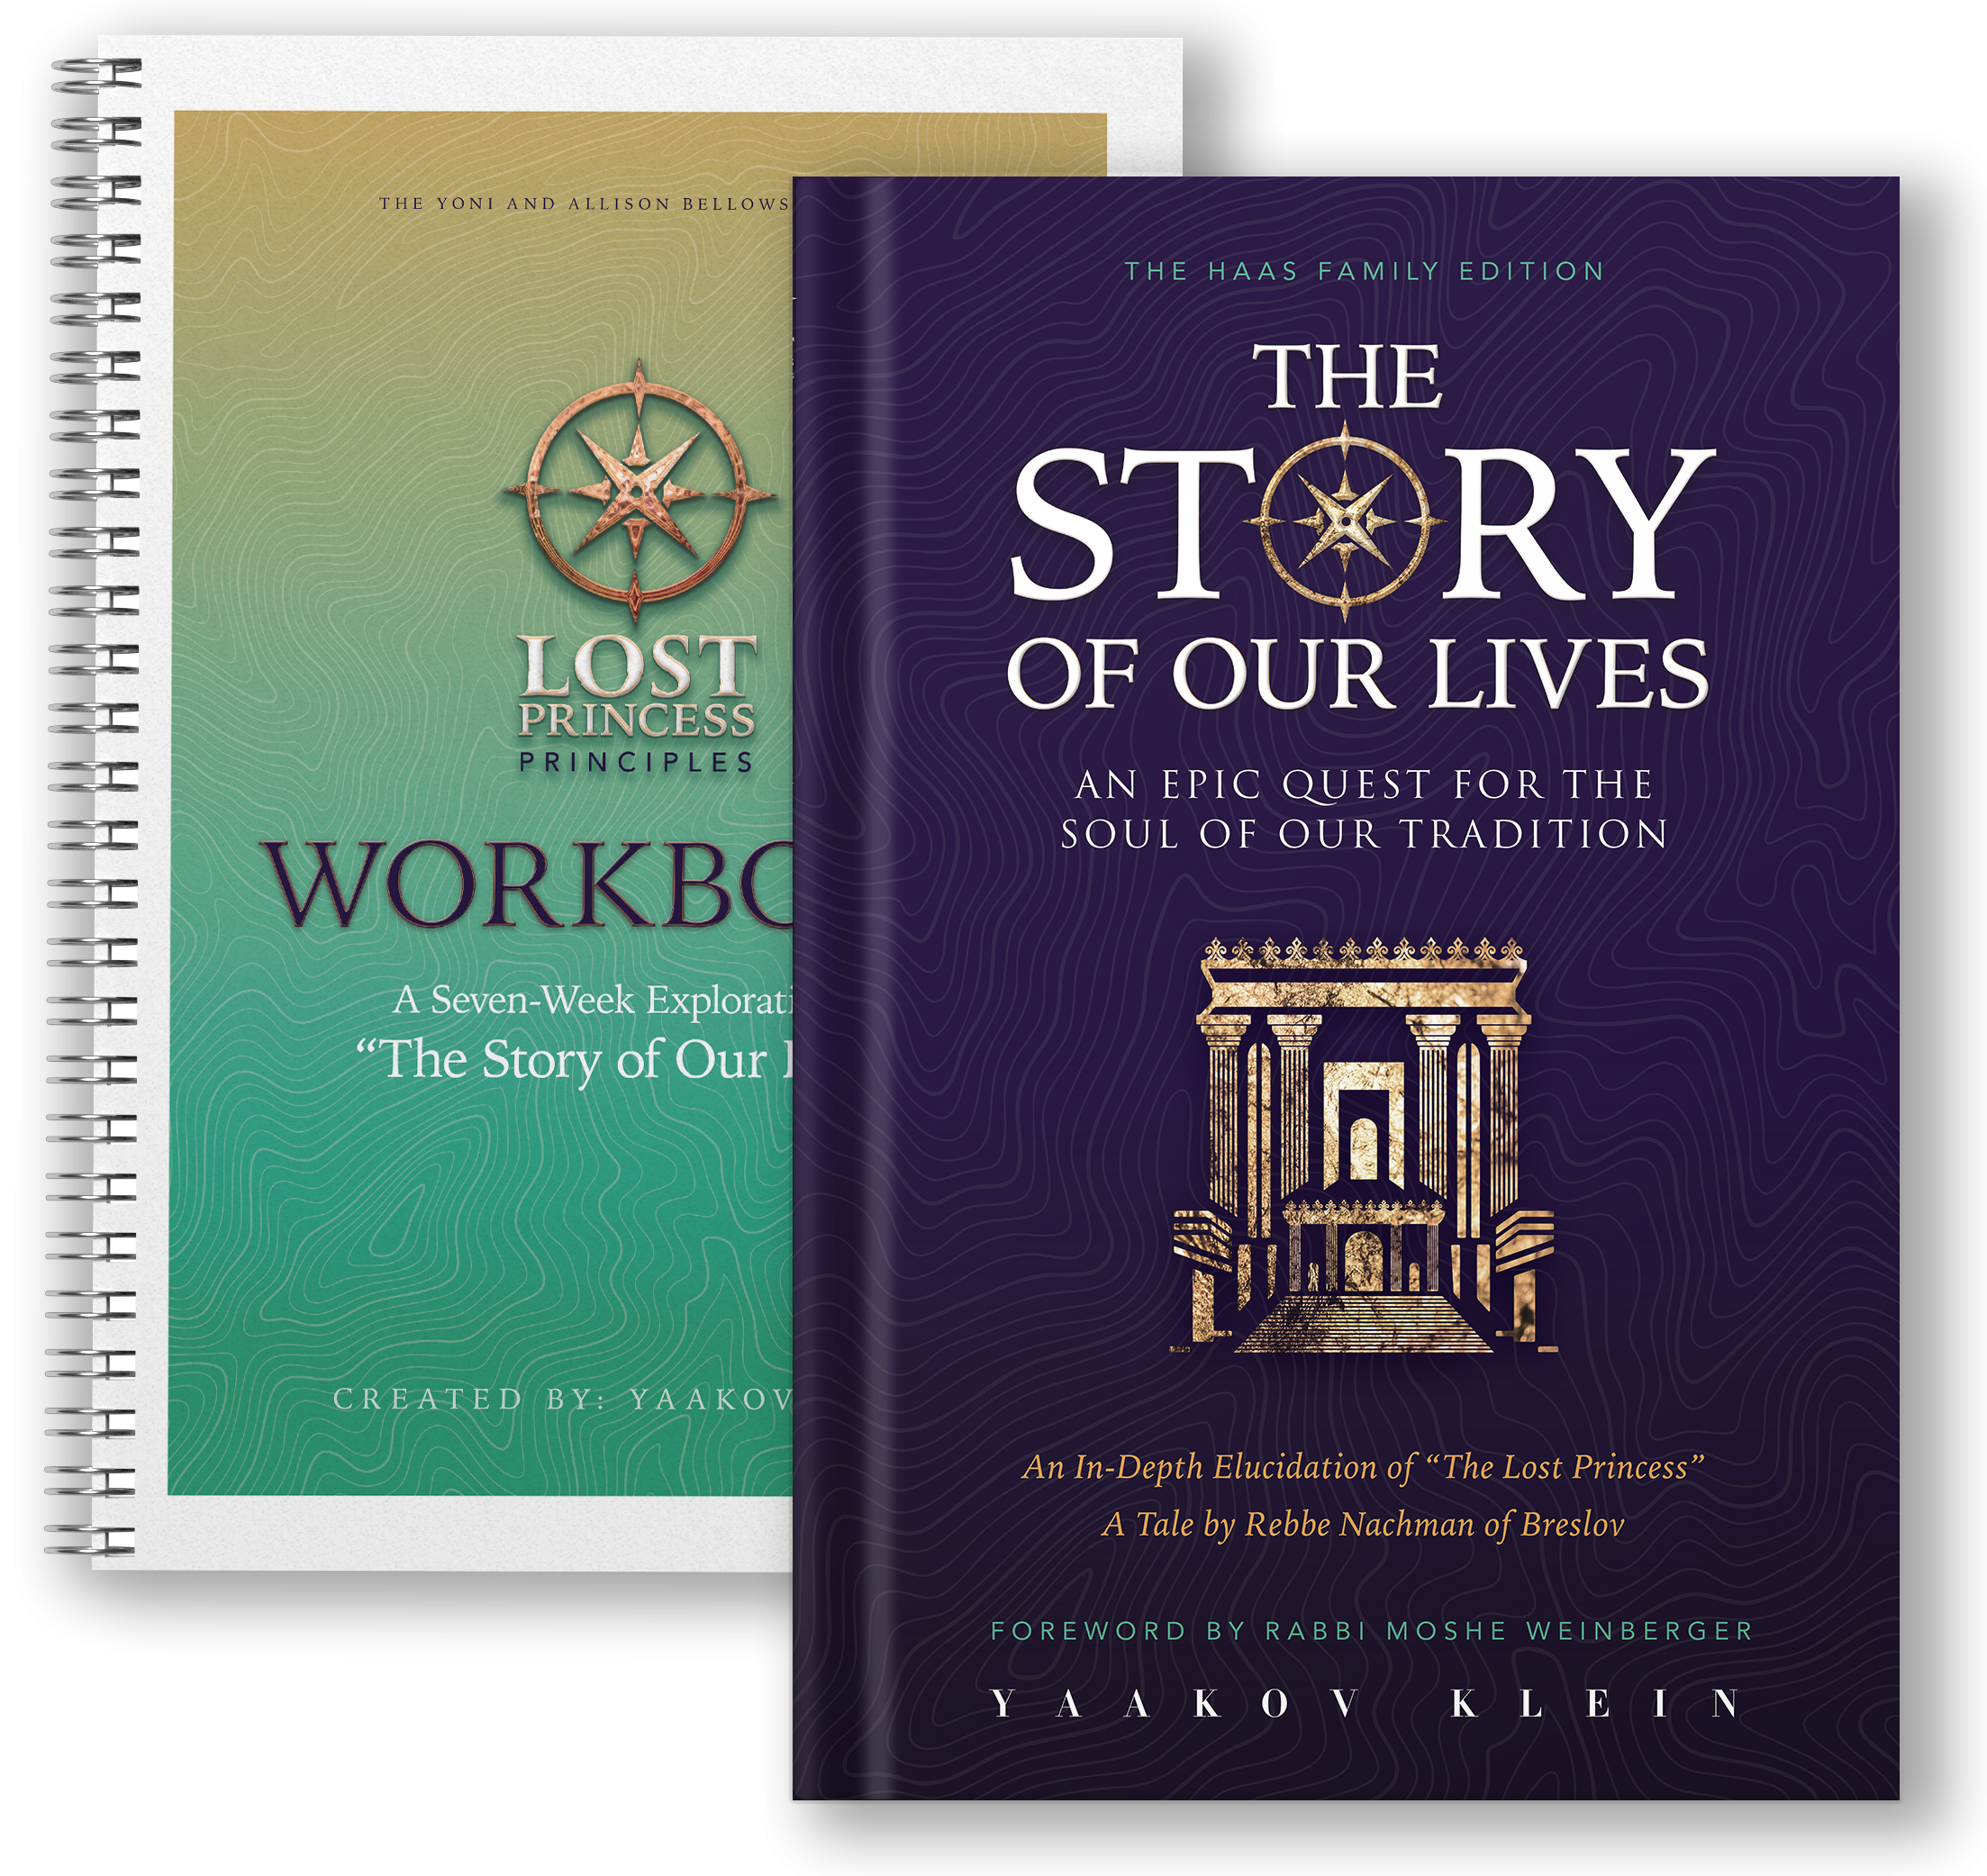 Book and workbook mokcup